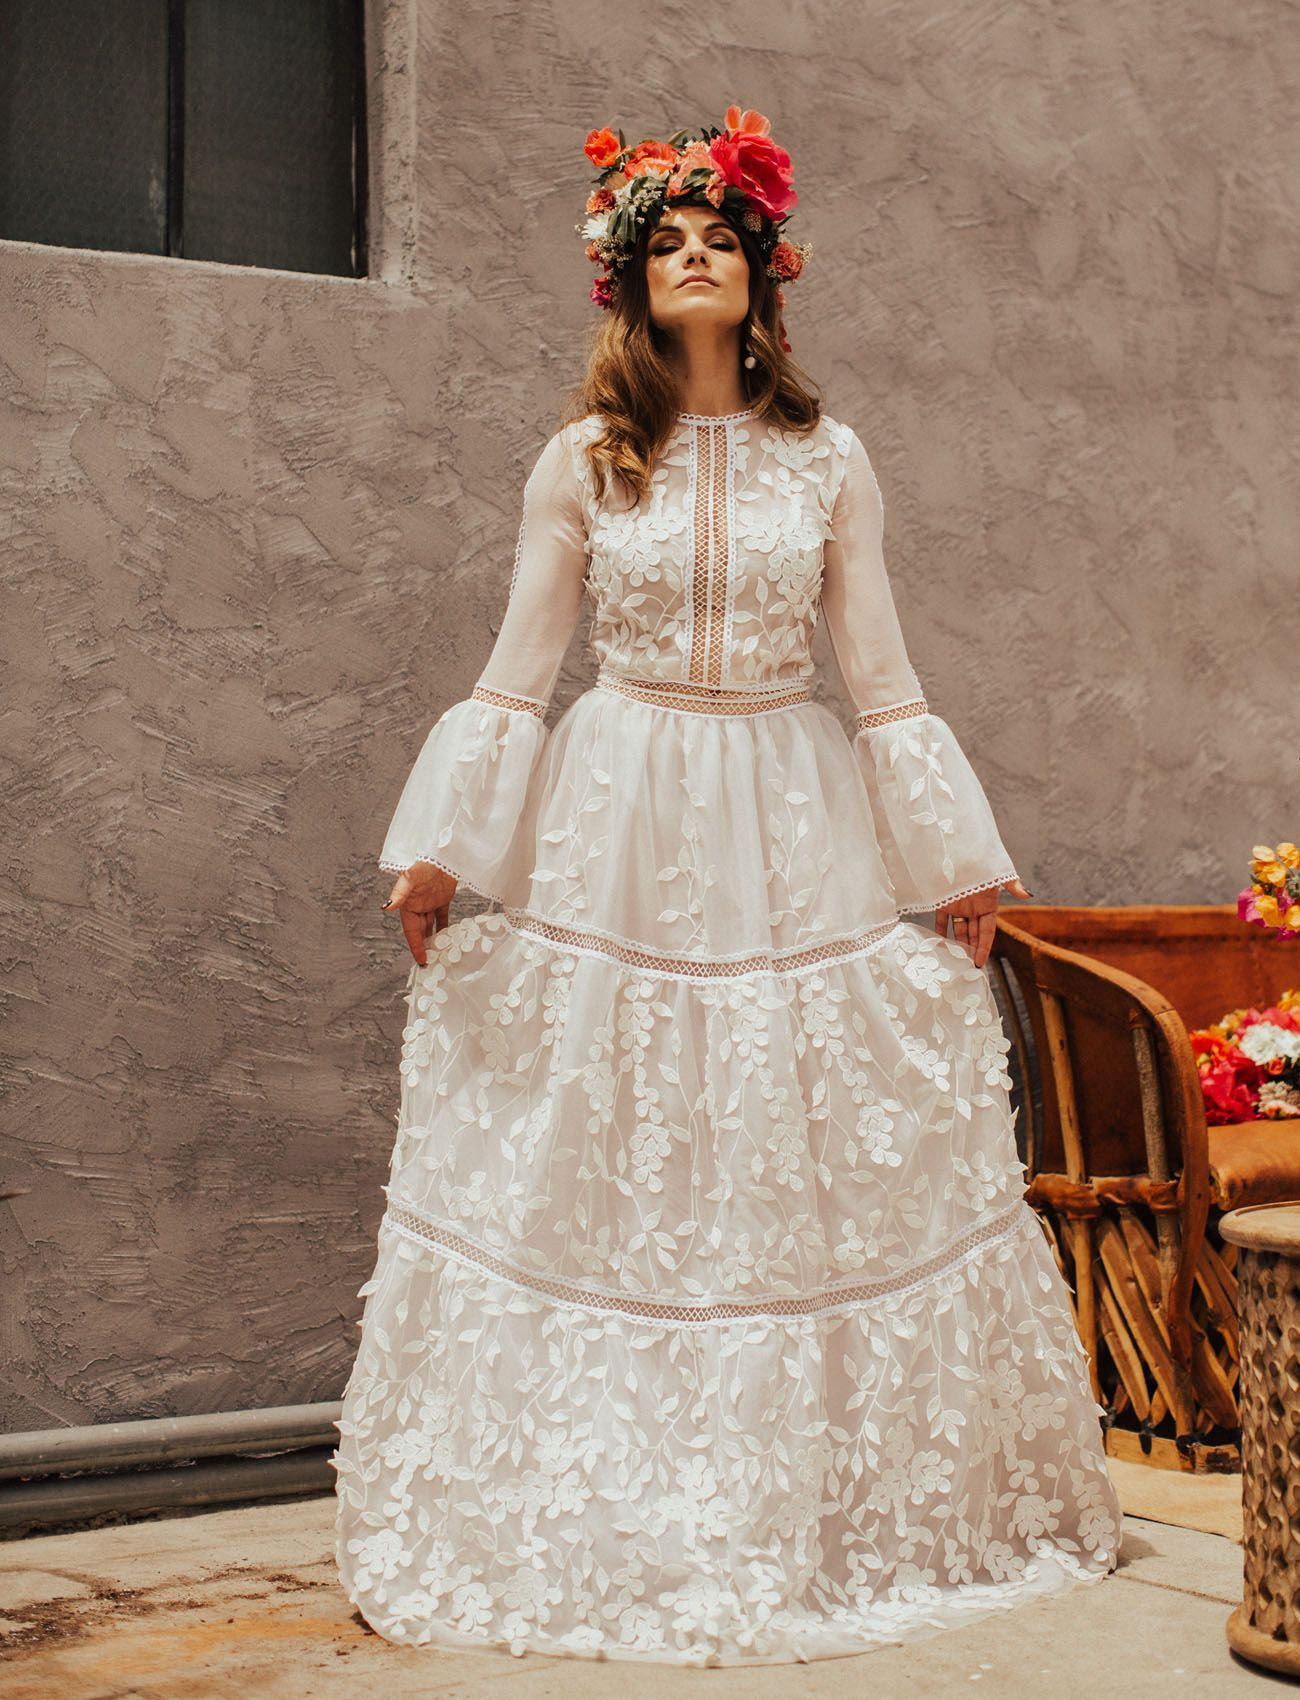 Culture color collide in this mexicaninspired wedding